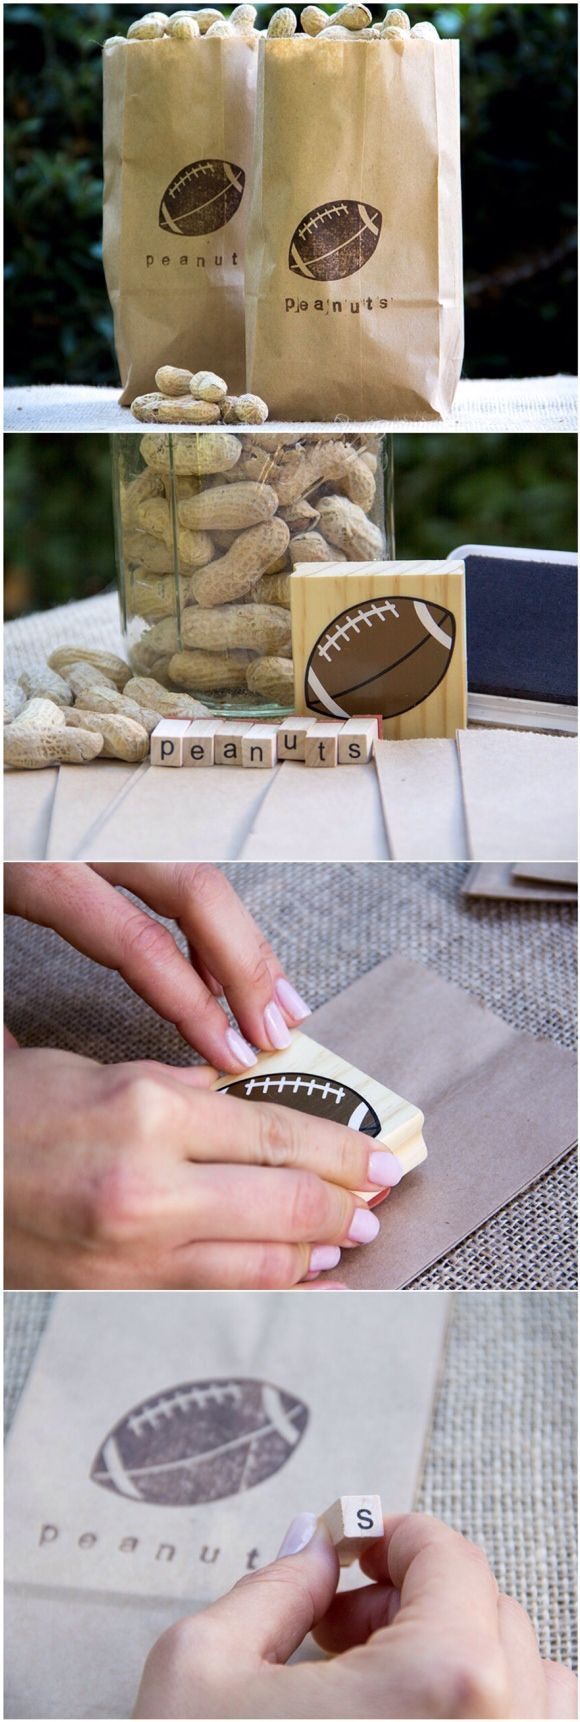 Football Stamped Peanut Bag/ Moonfrye DIY/ Superbowl Crafts/ Stamp Crafts/ Superbowl Party Ideas